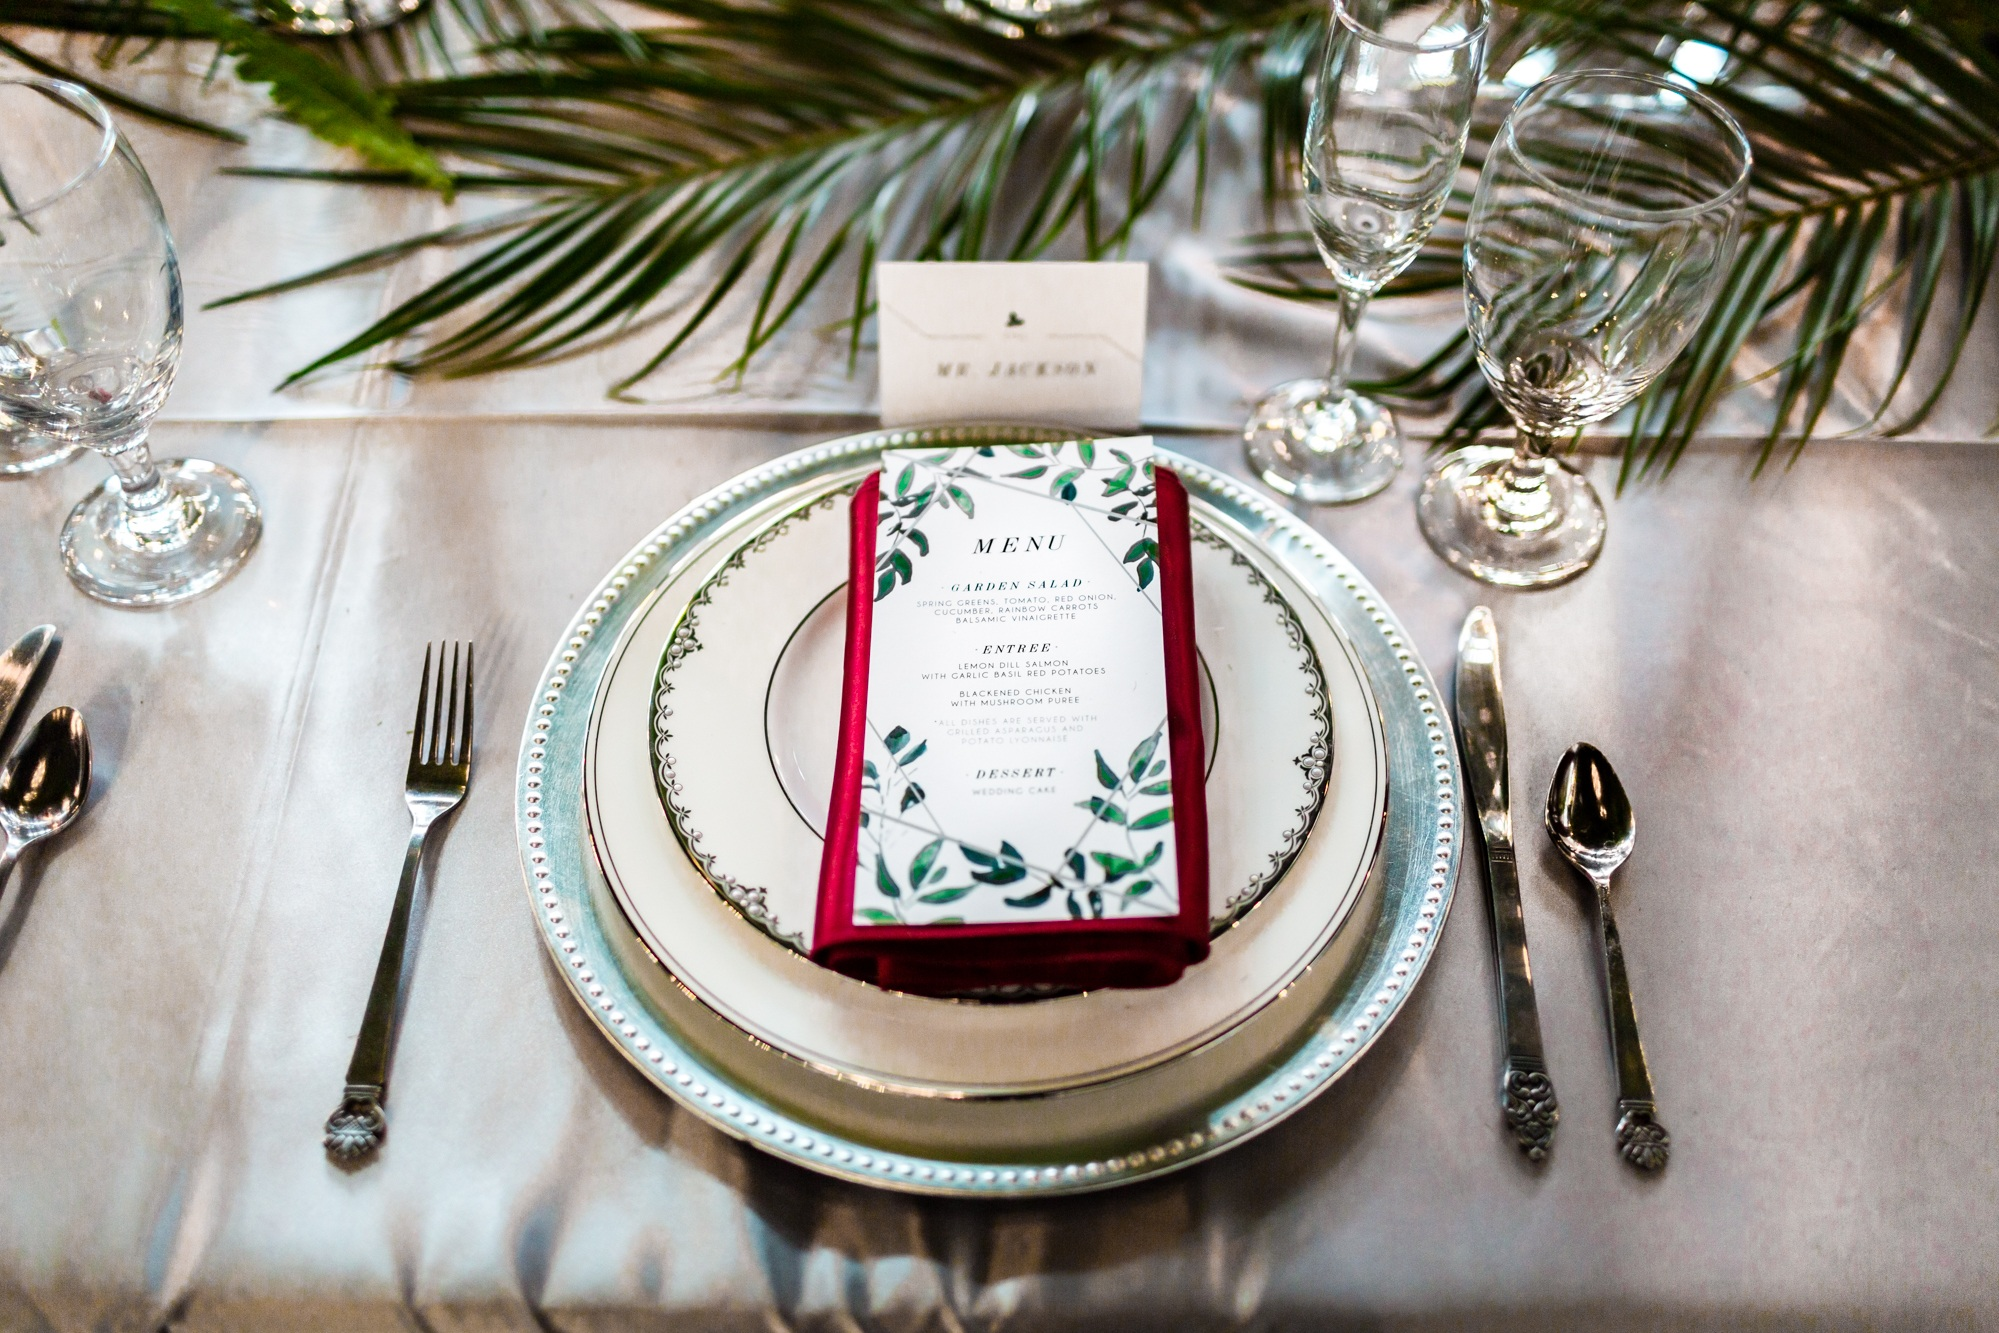 guest plate showing menu and burgundy napkin